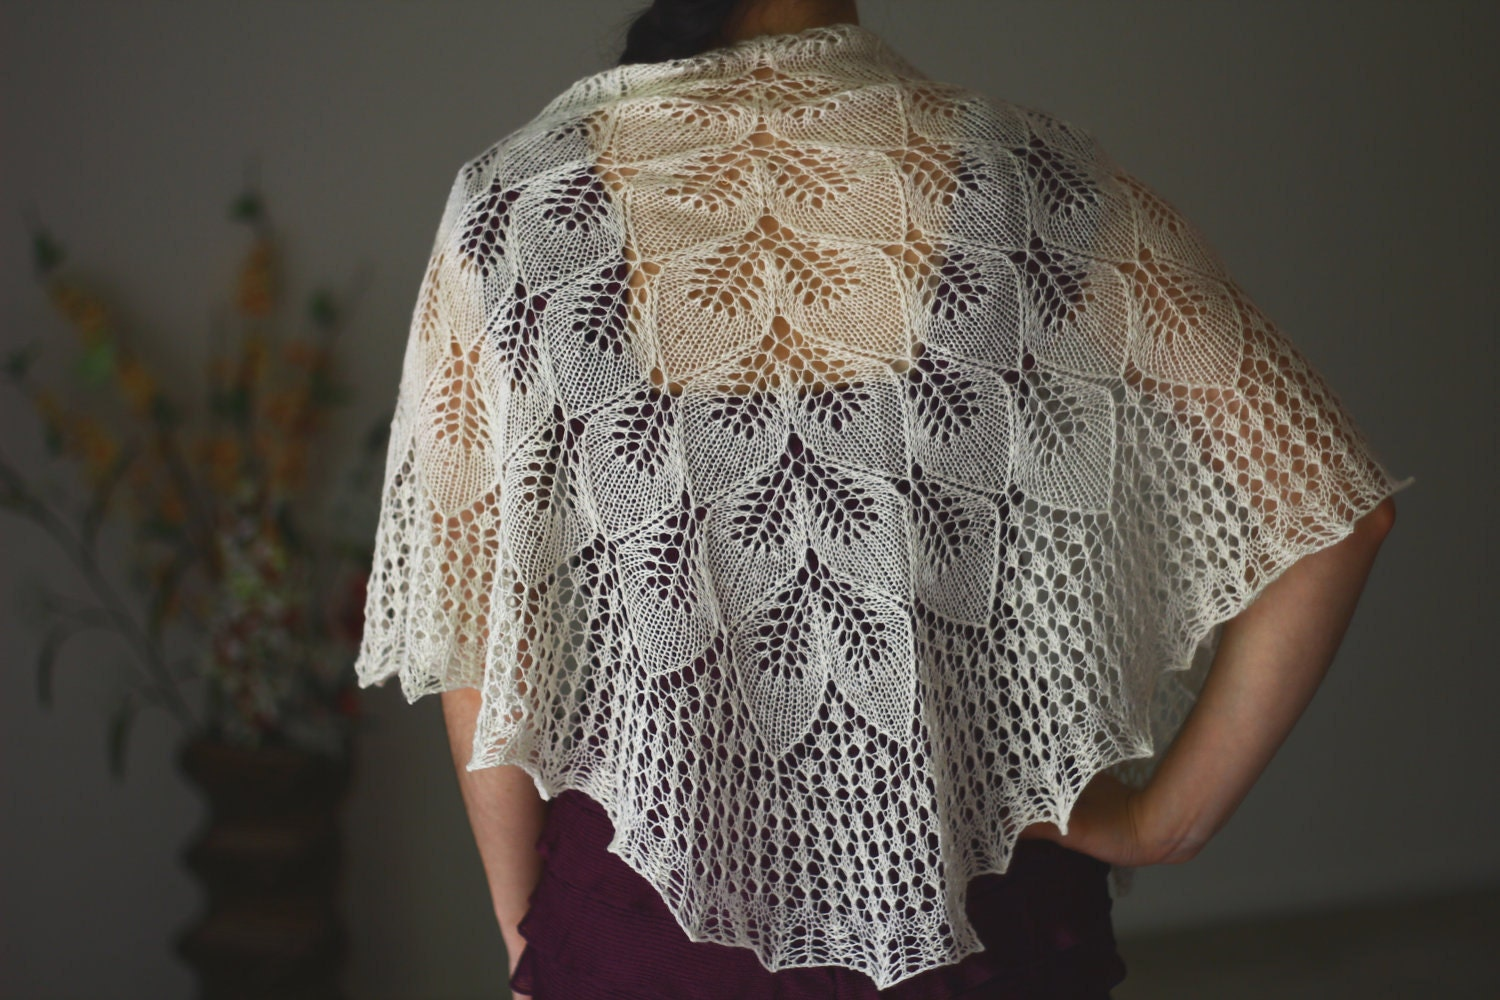 Knit wedding shawl bridal shawl bridesmaids shawl in vanilla